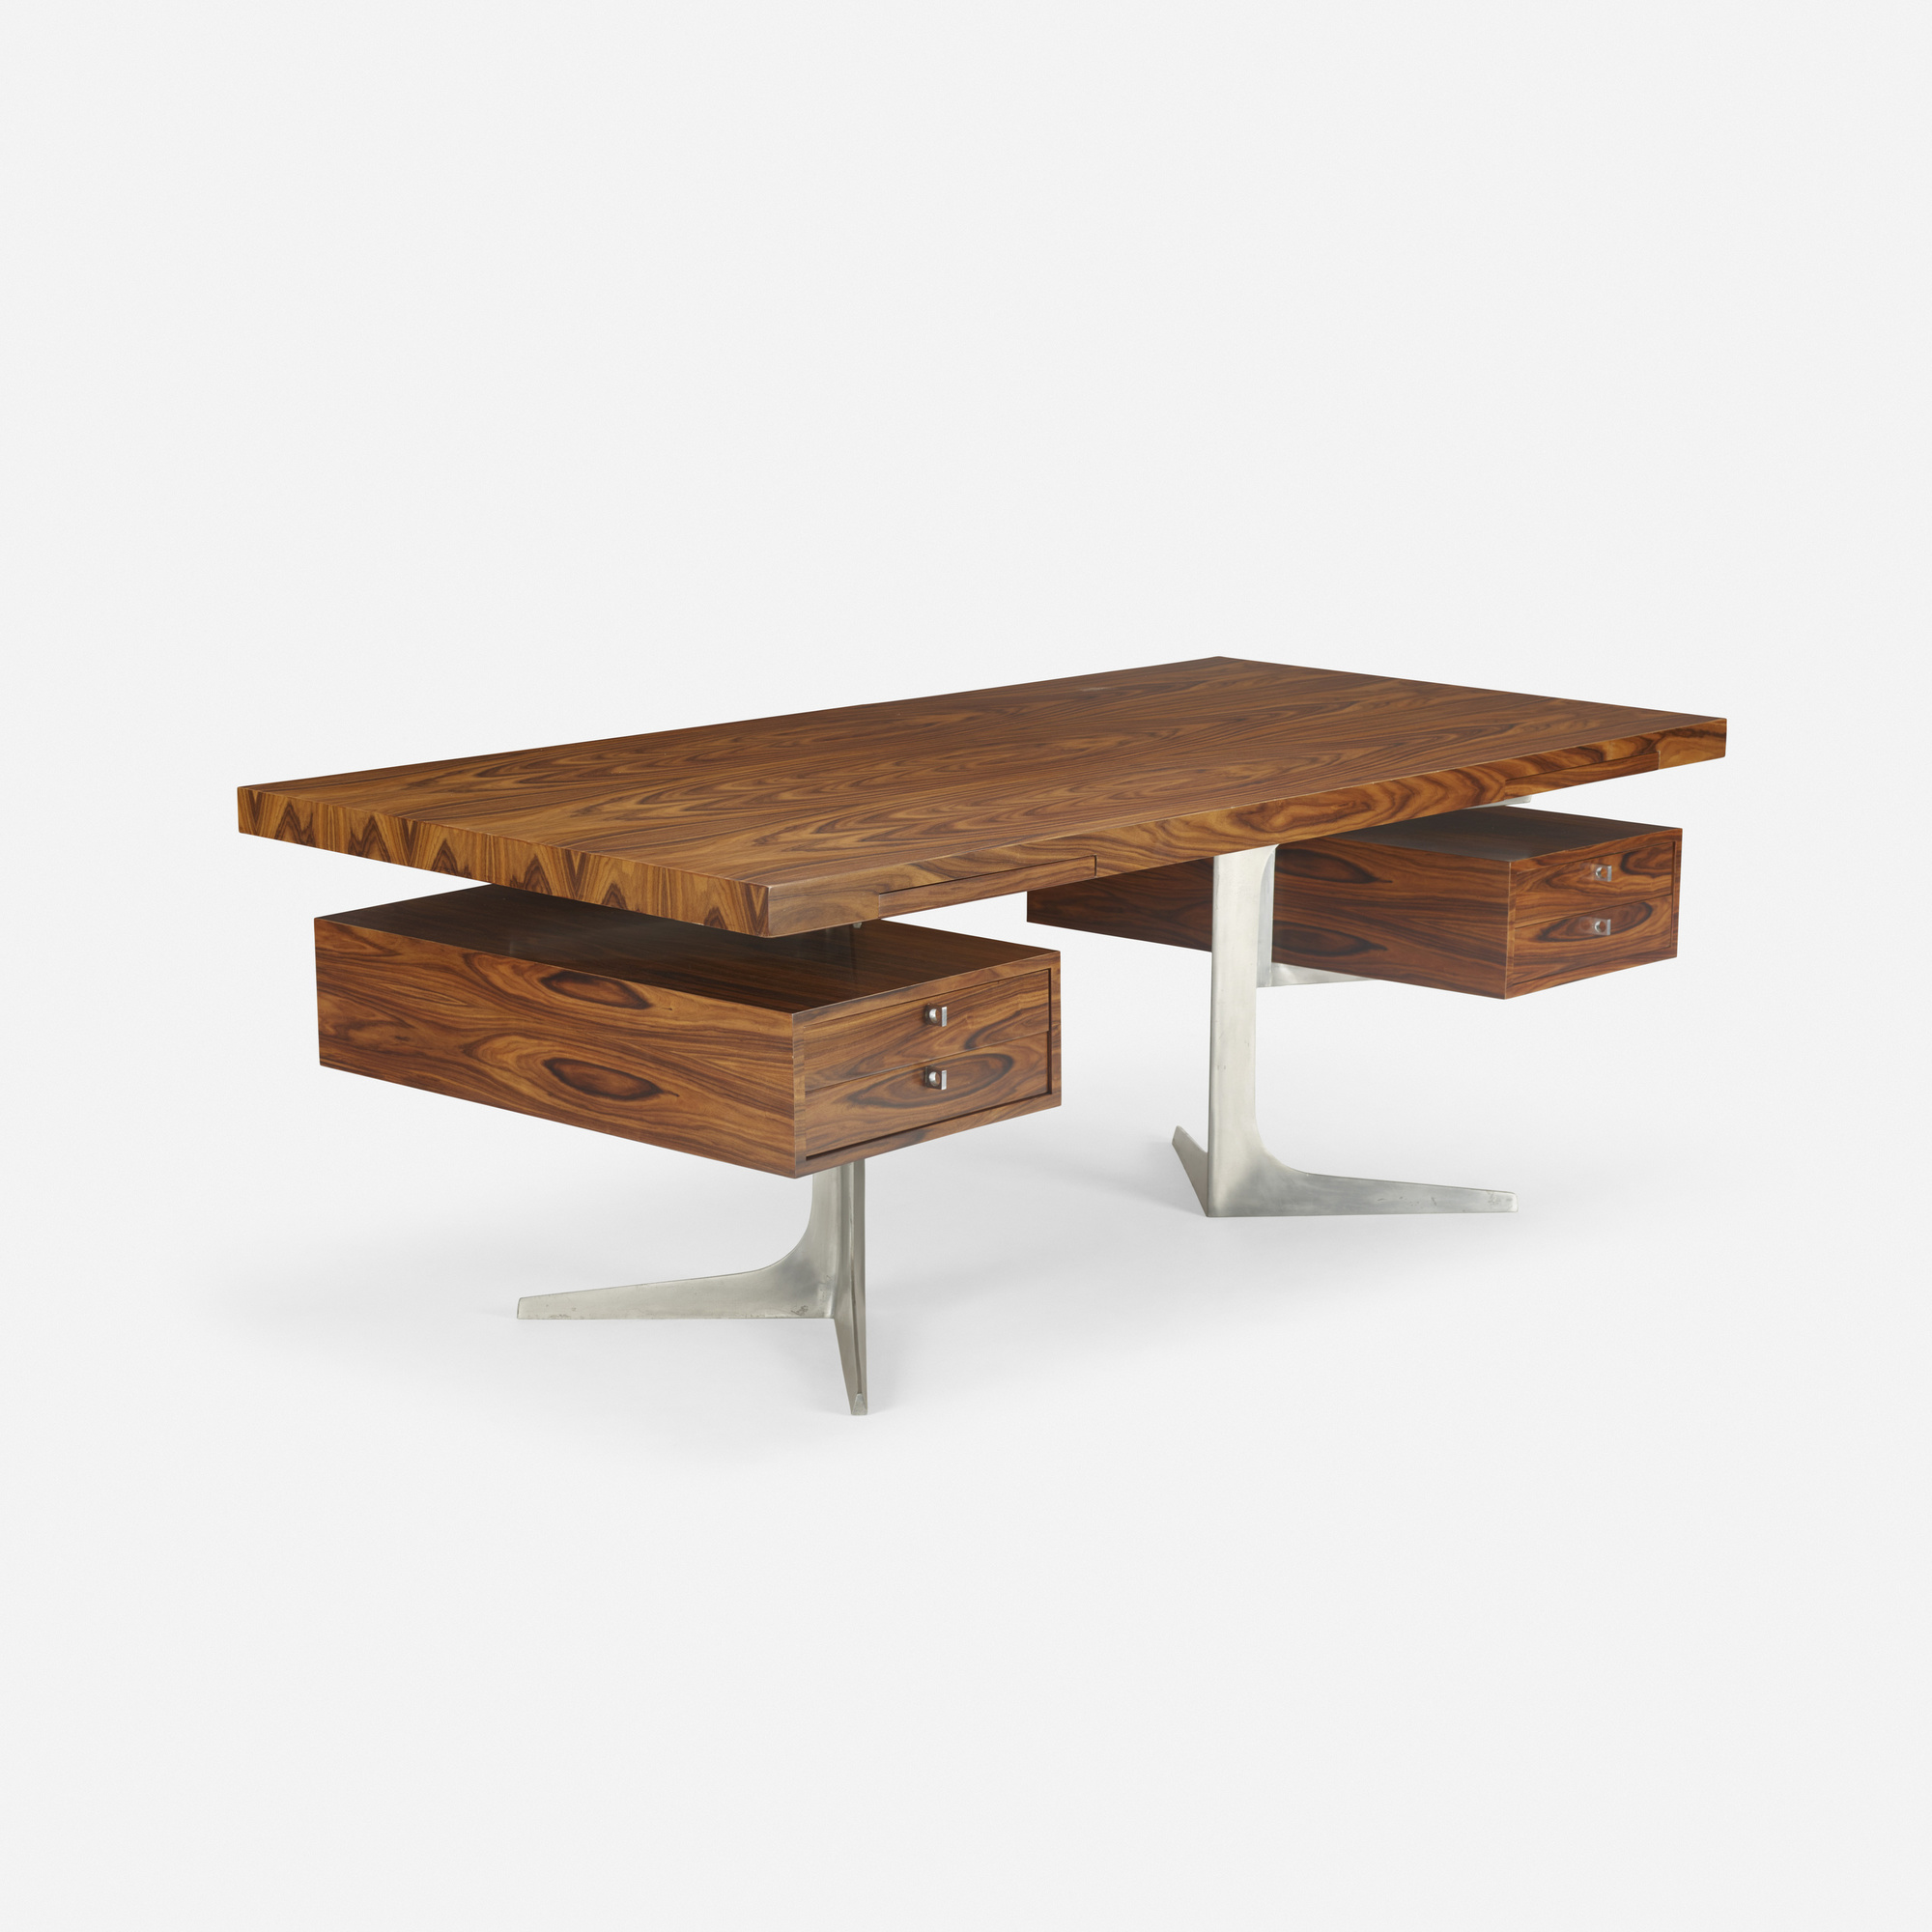 344: Herbert Hirche / desk (1 of 3)